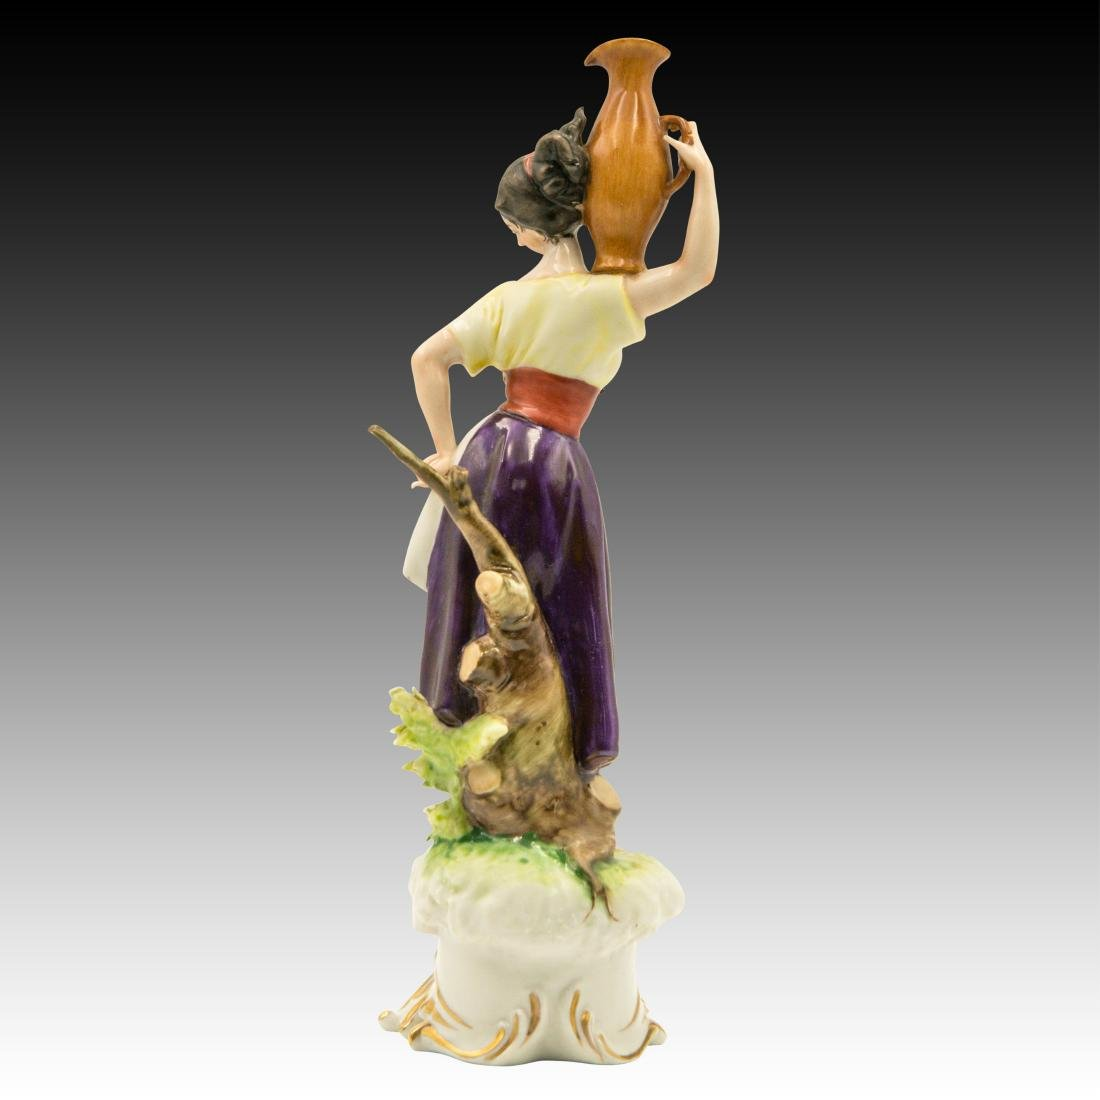 Young Peasant Woman Carrying a Water Jug Figurine - 3